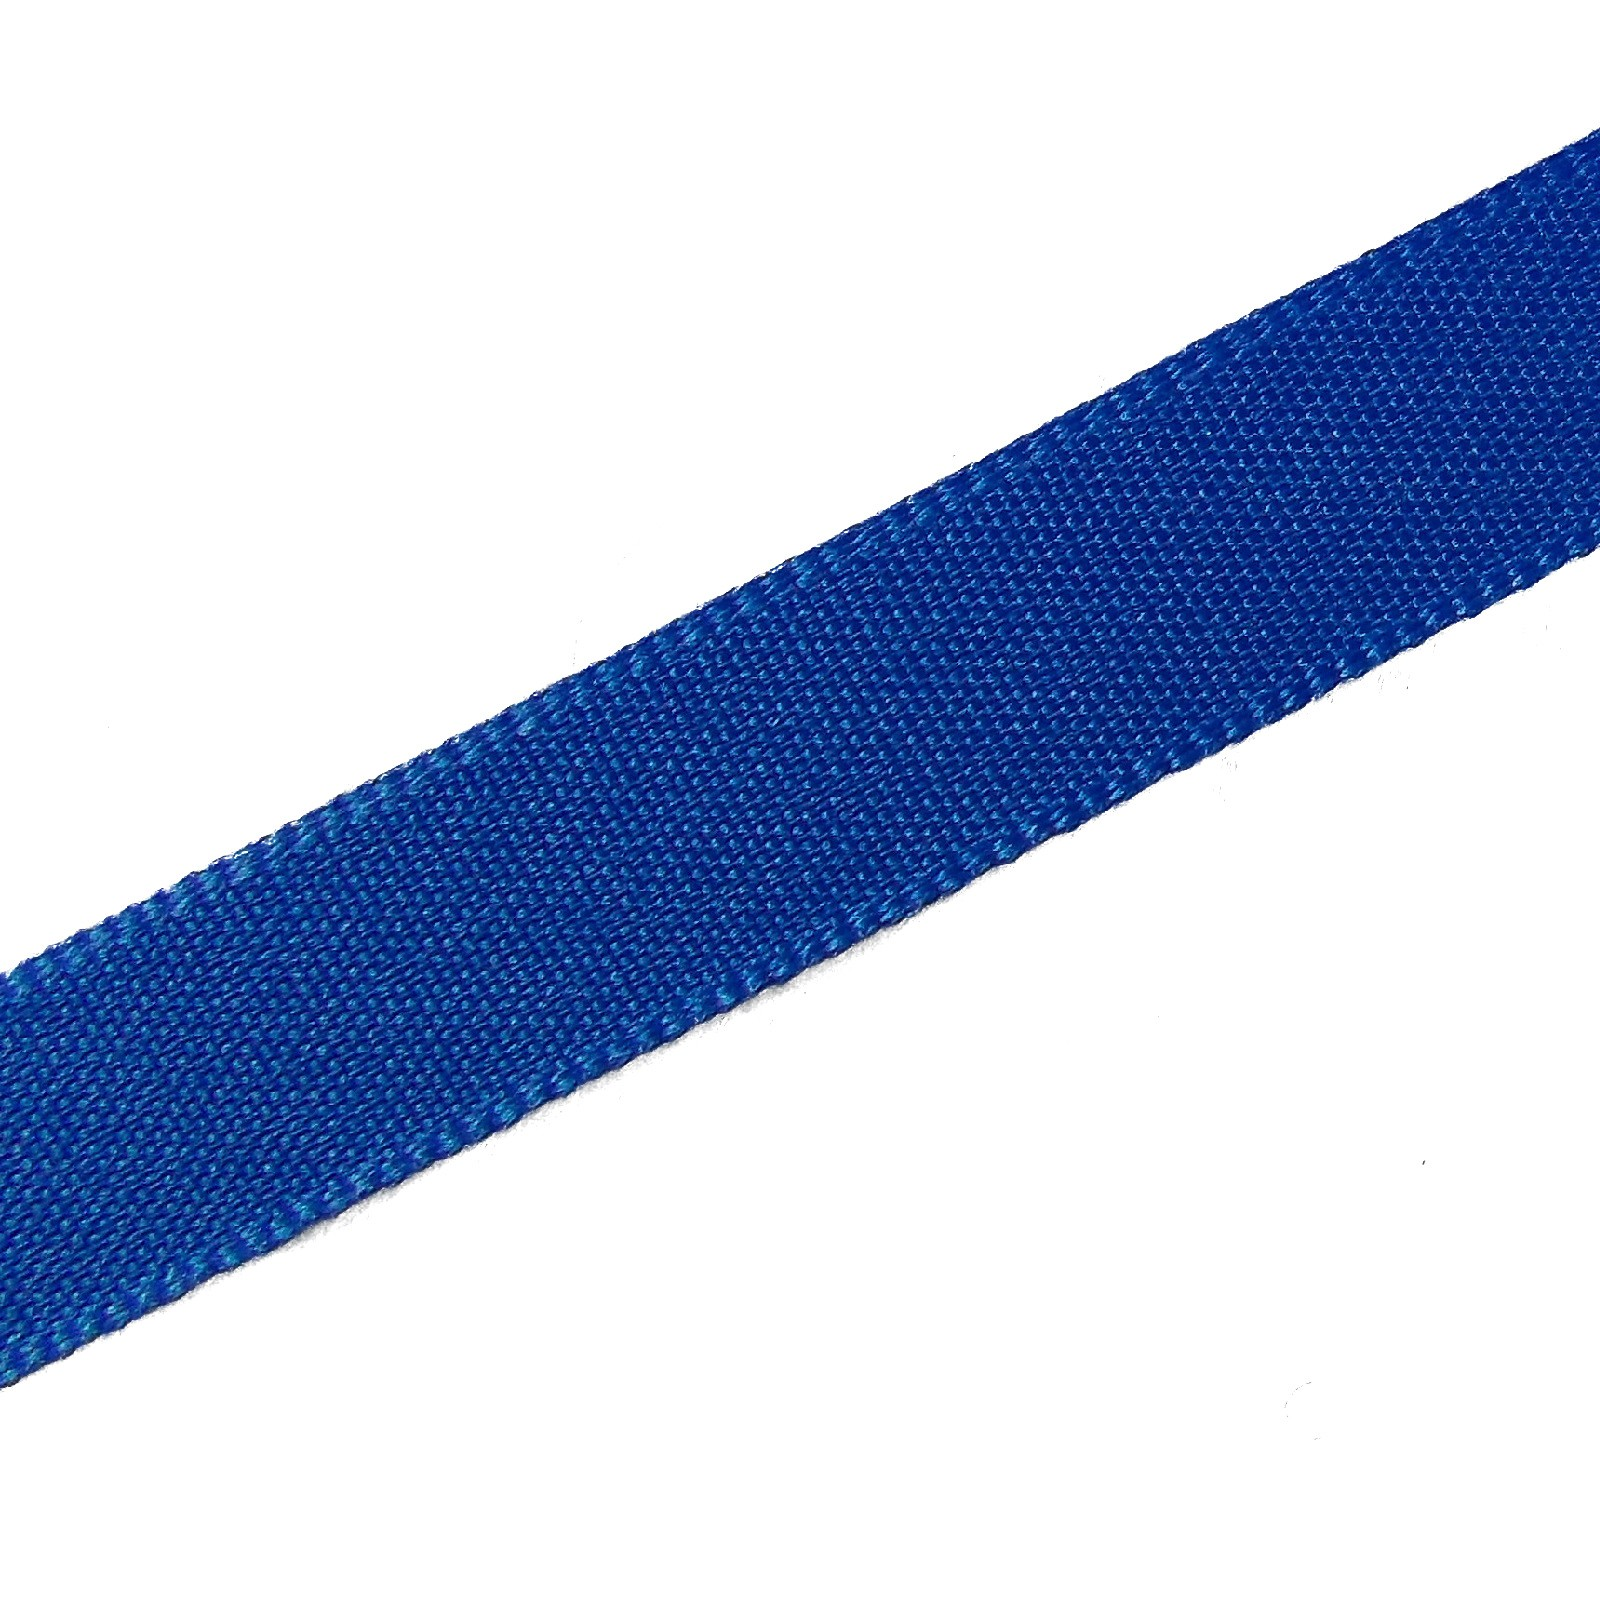 Berisfords Seam Binding Polyester Ribbon Tape 25mm wide Royal Blue 1 metre length